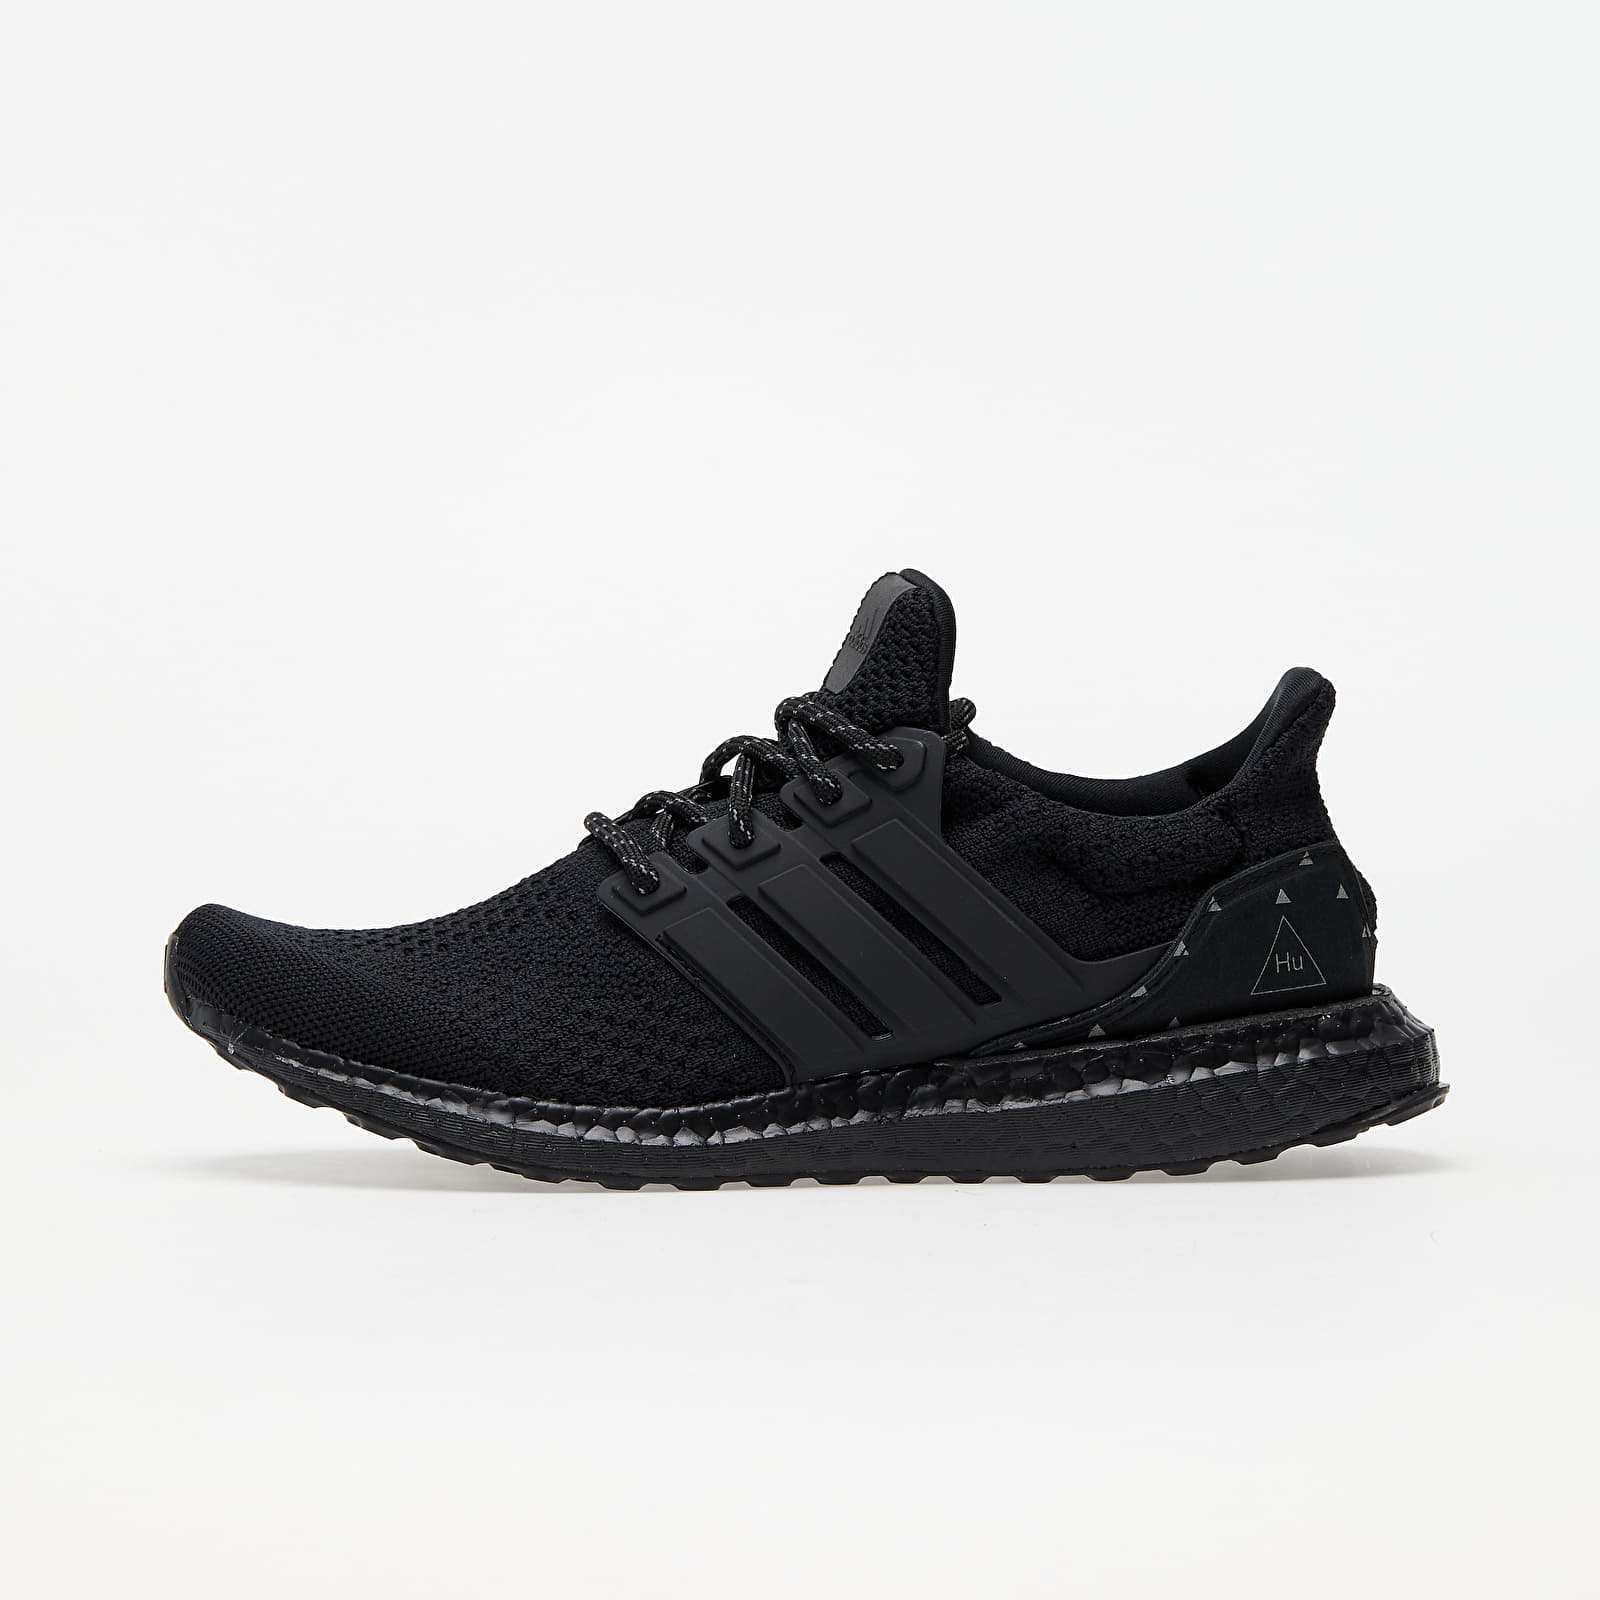 Chaussures et baskets homme adidas x Pharrell Williams UltraBOOST DNA Core Black/ Core Black/ Core Black